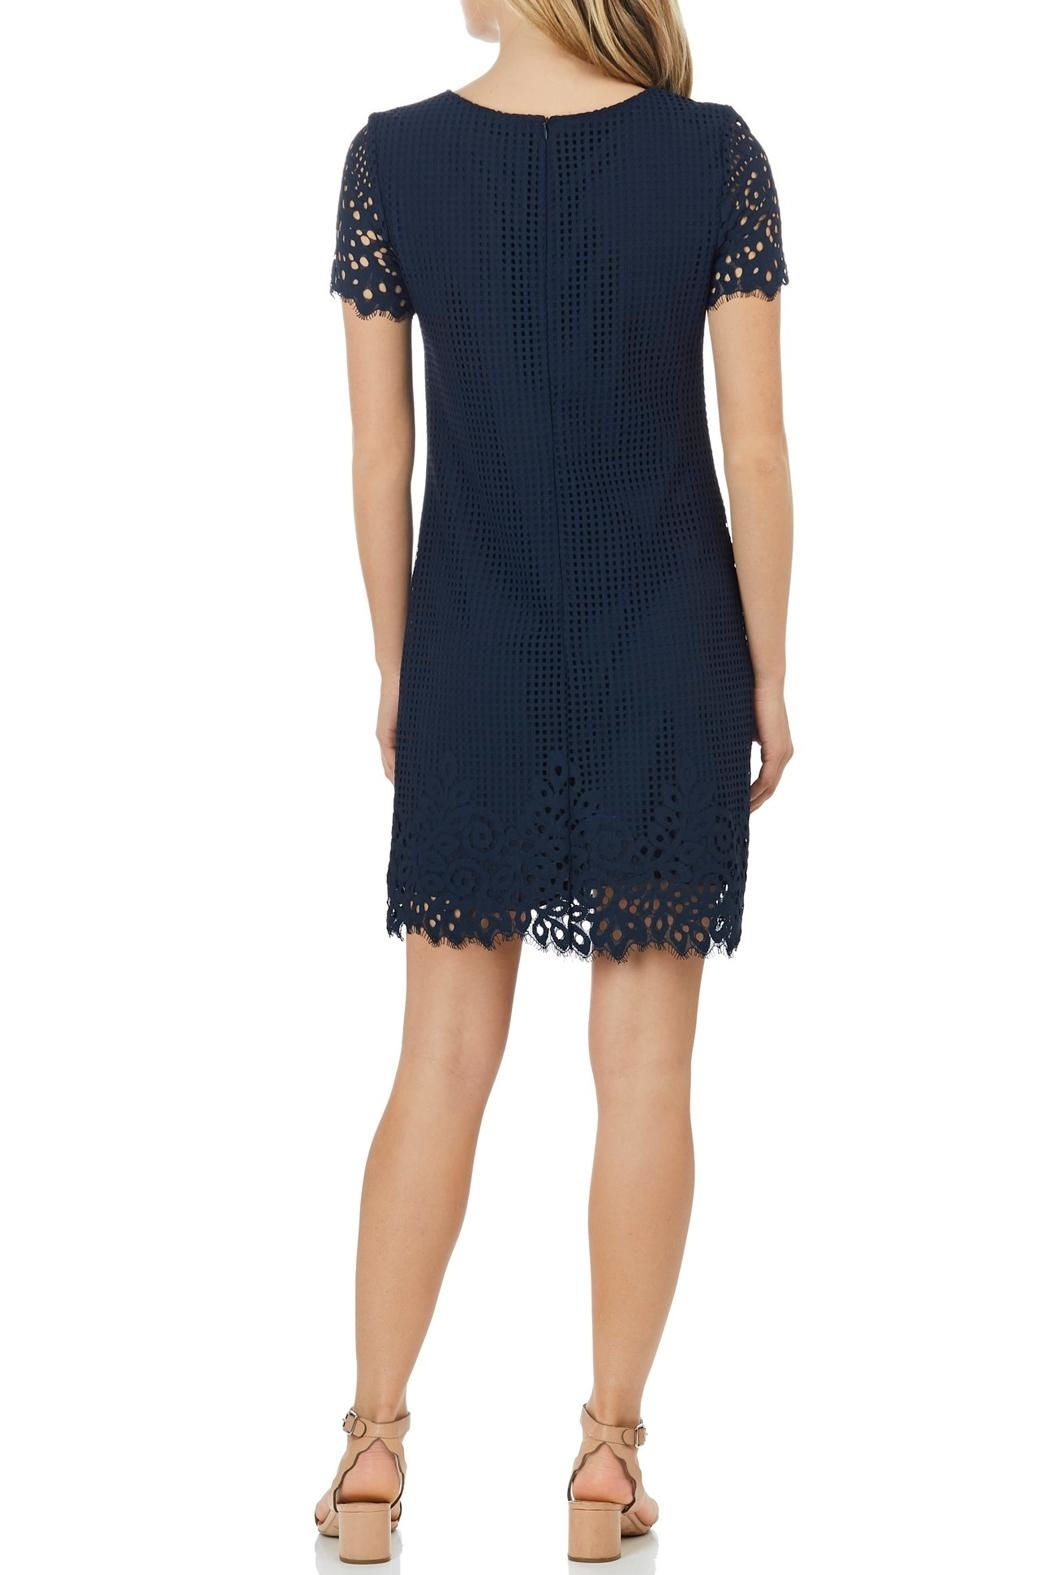 Jude Connally Ella Lace Dress - Front Full Image